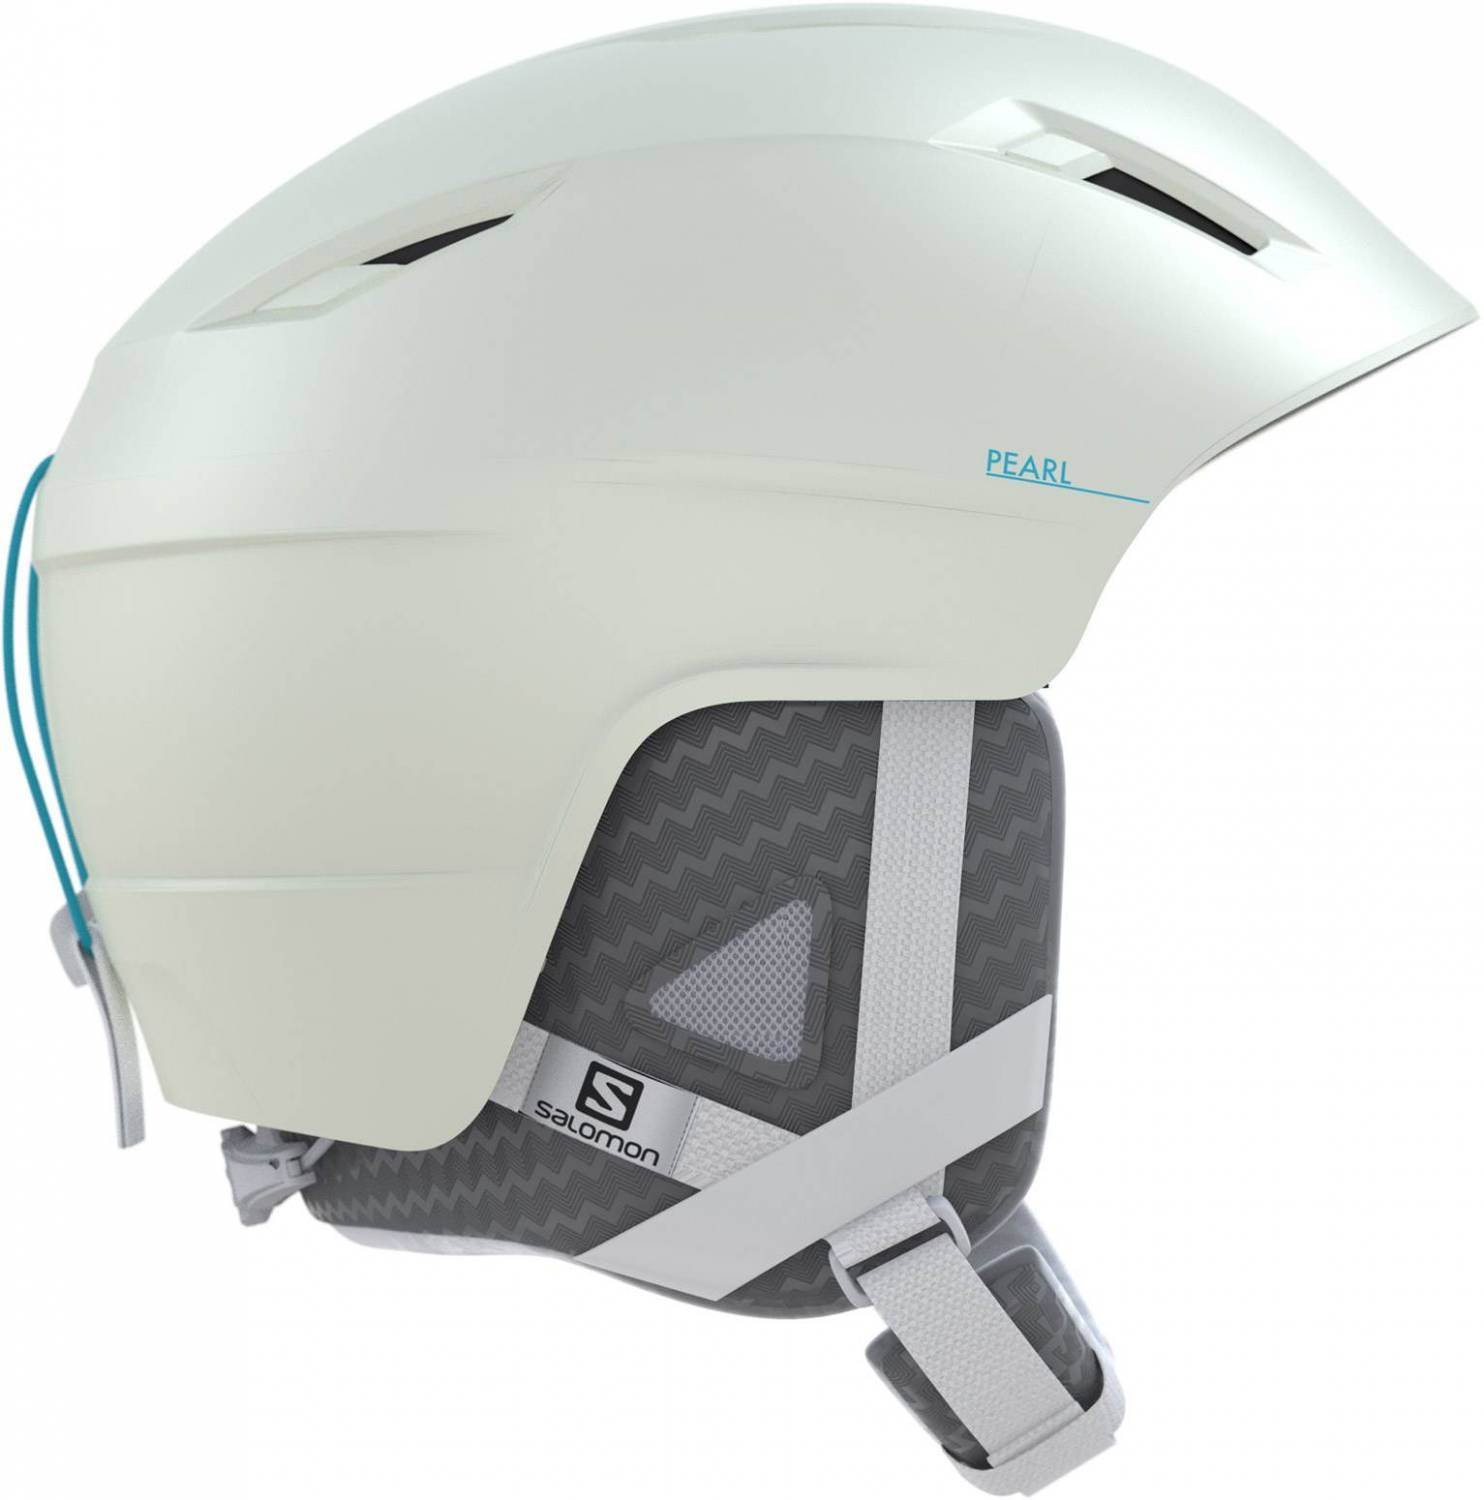 Salomon Pearl+ Skihelm Women (Größe: 53-56 cm, white/blue bird)